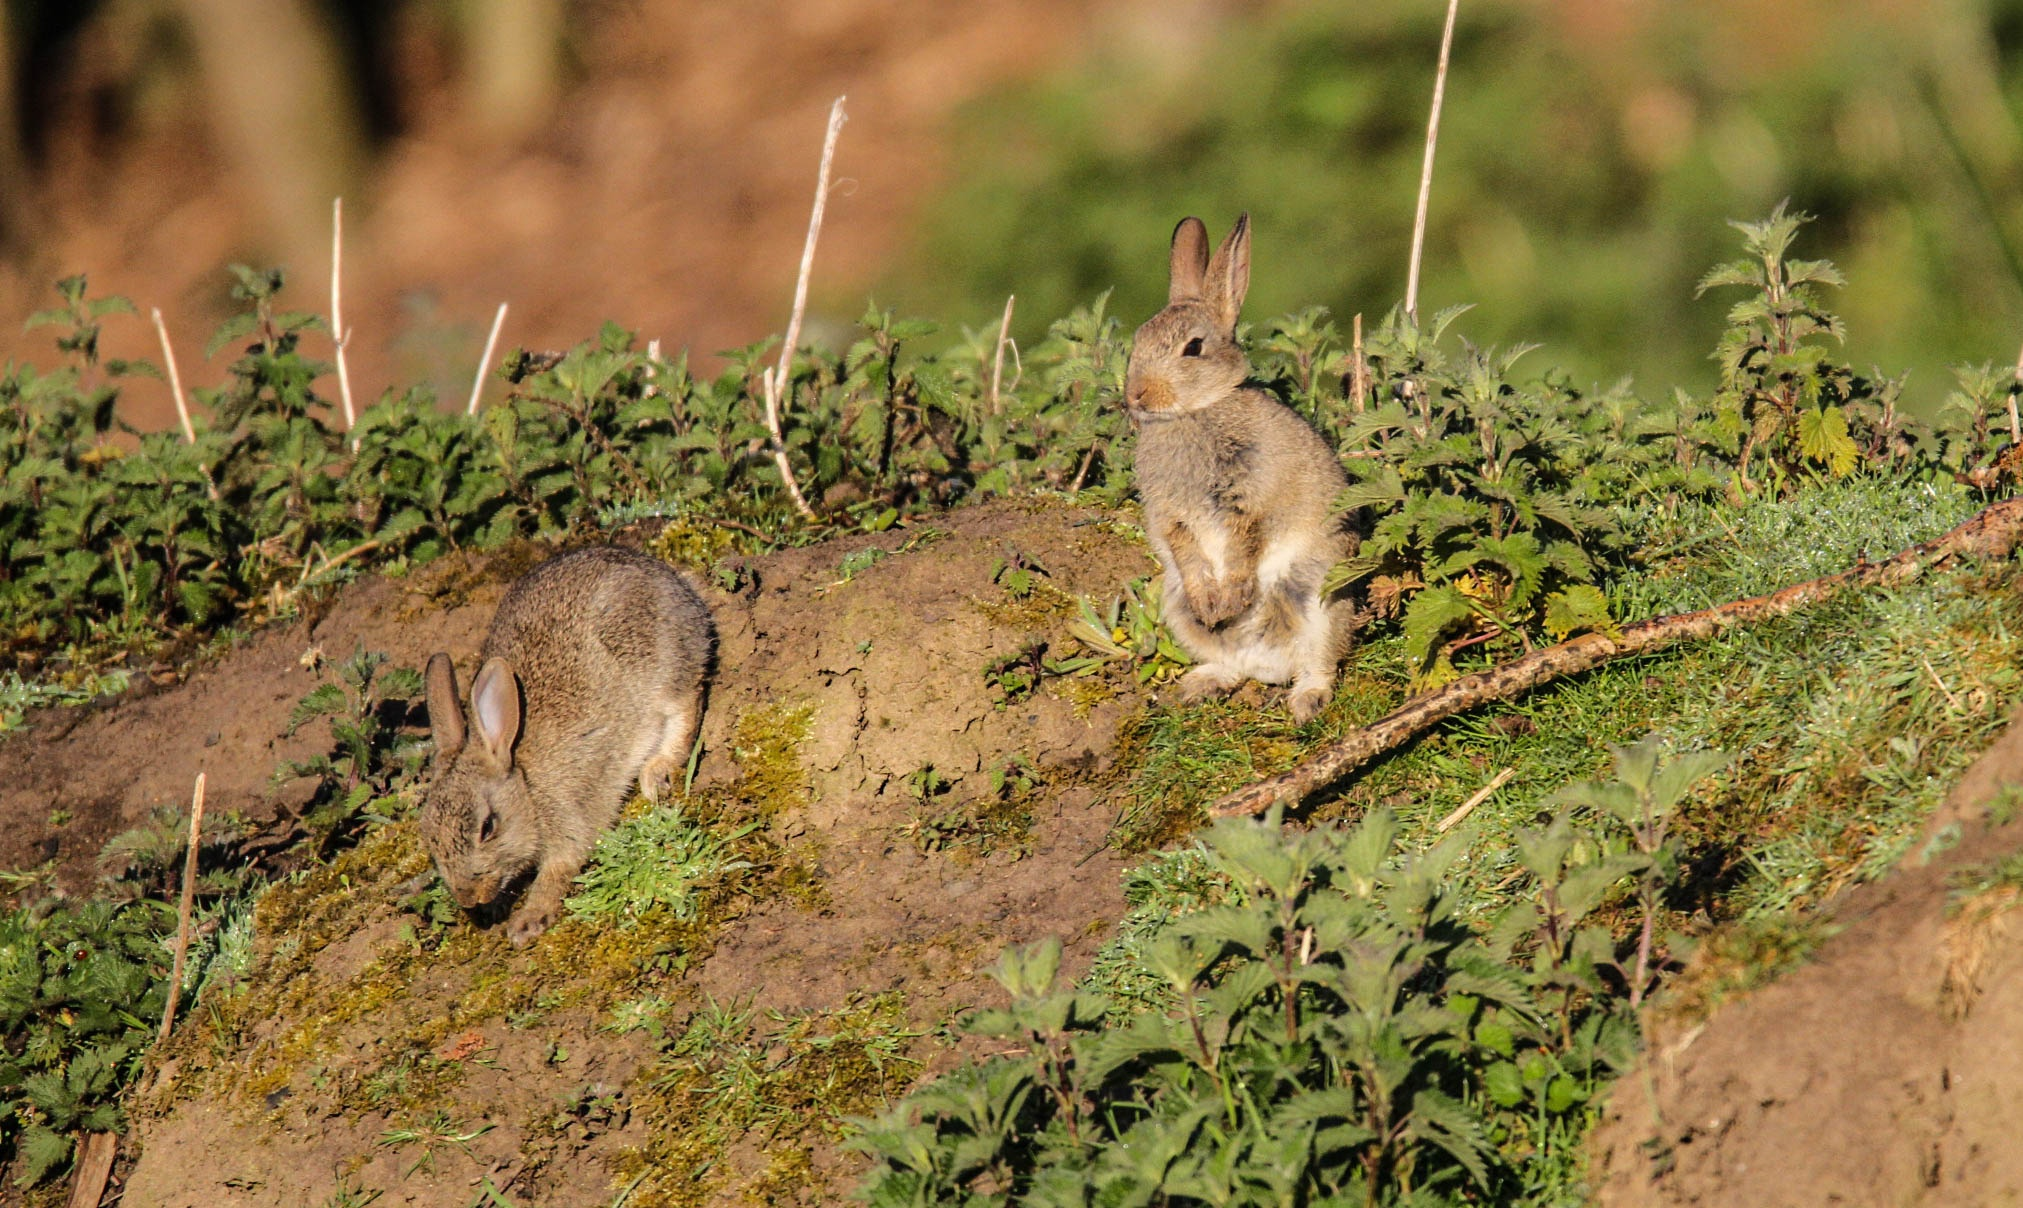 Early morning rabbits by garry-chisholm1